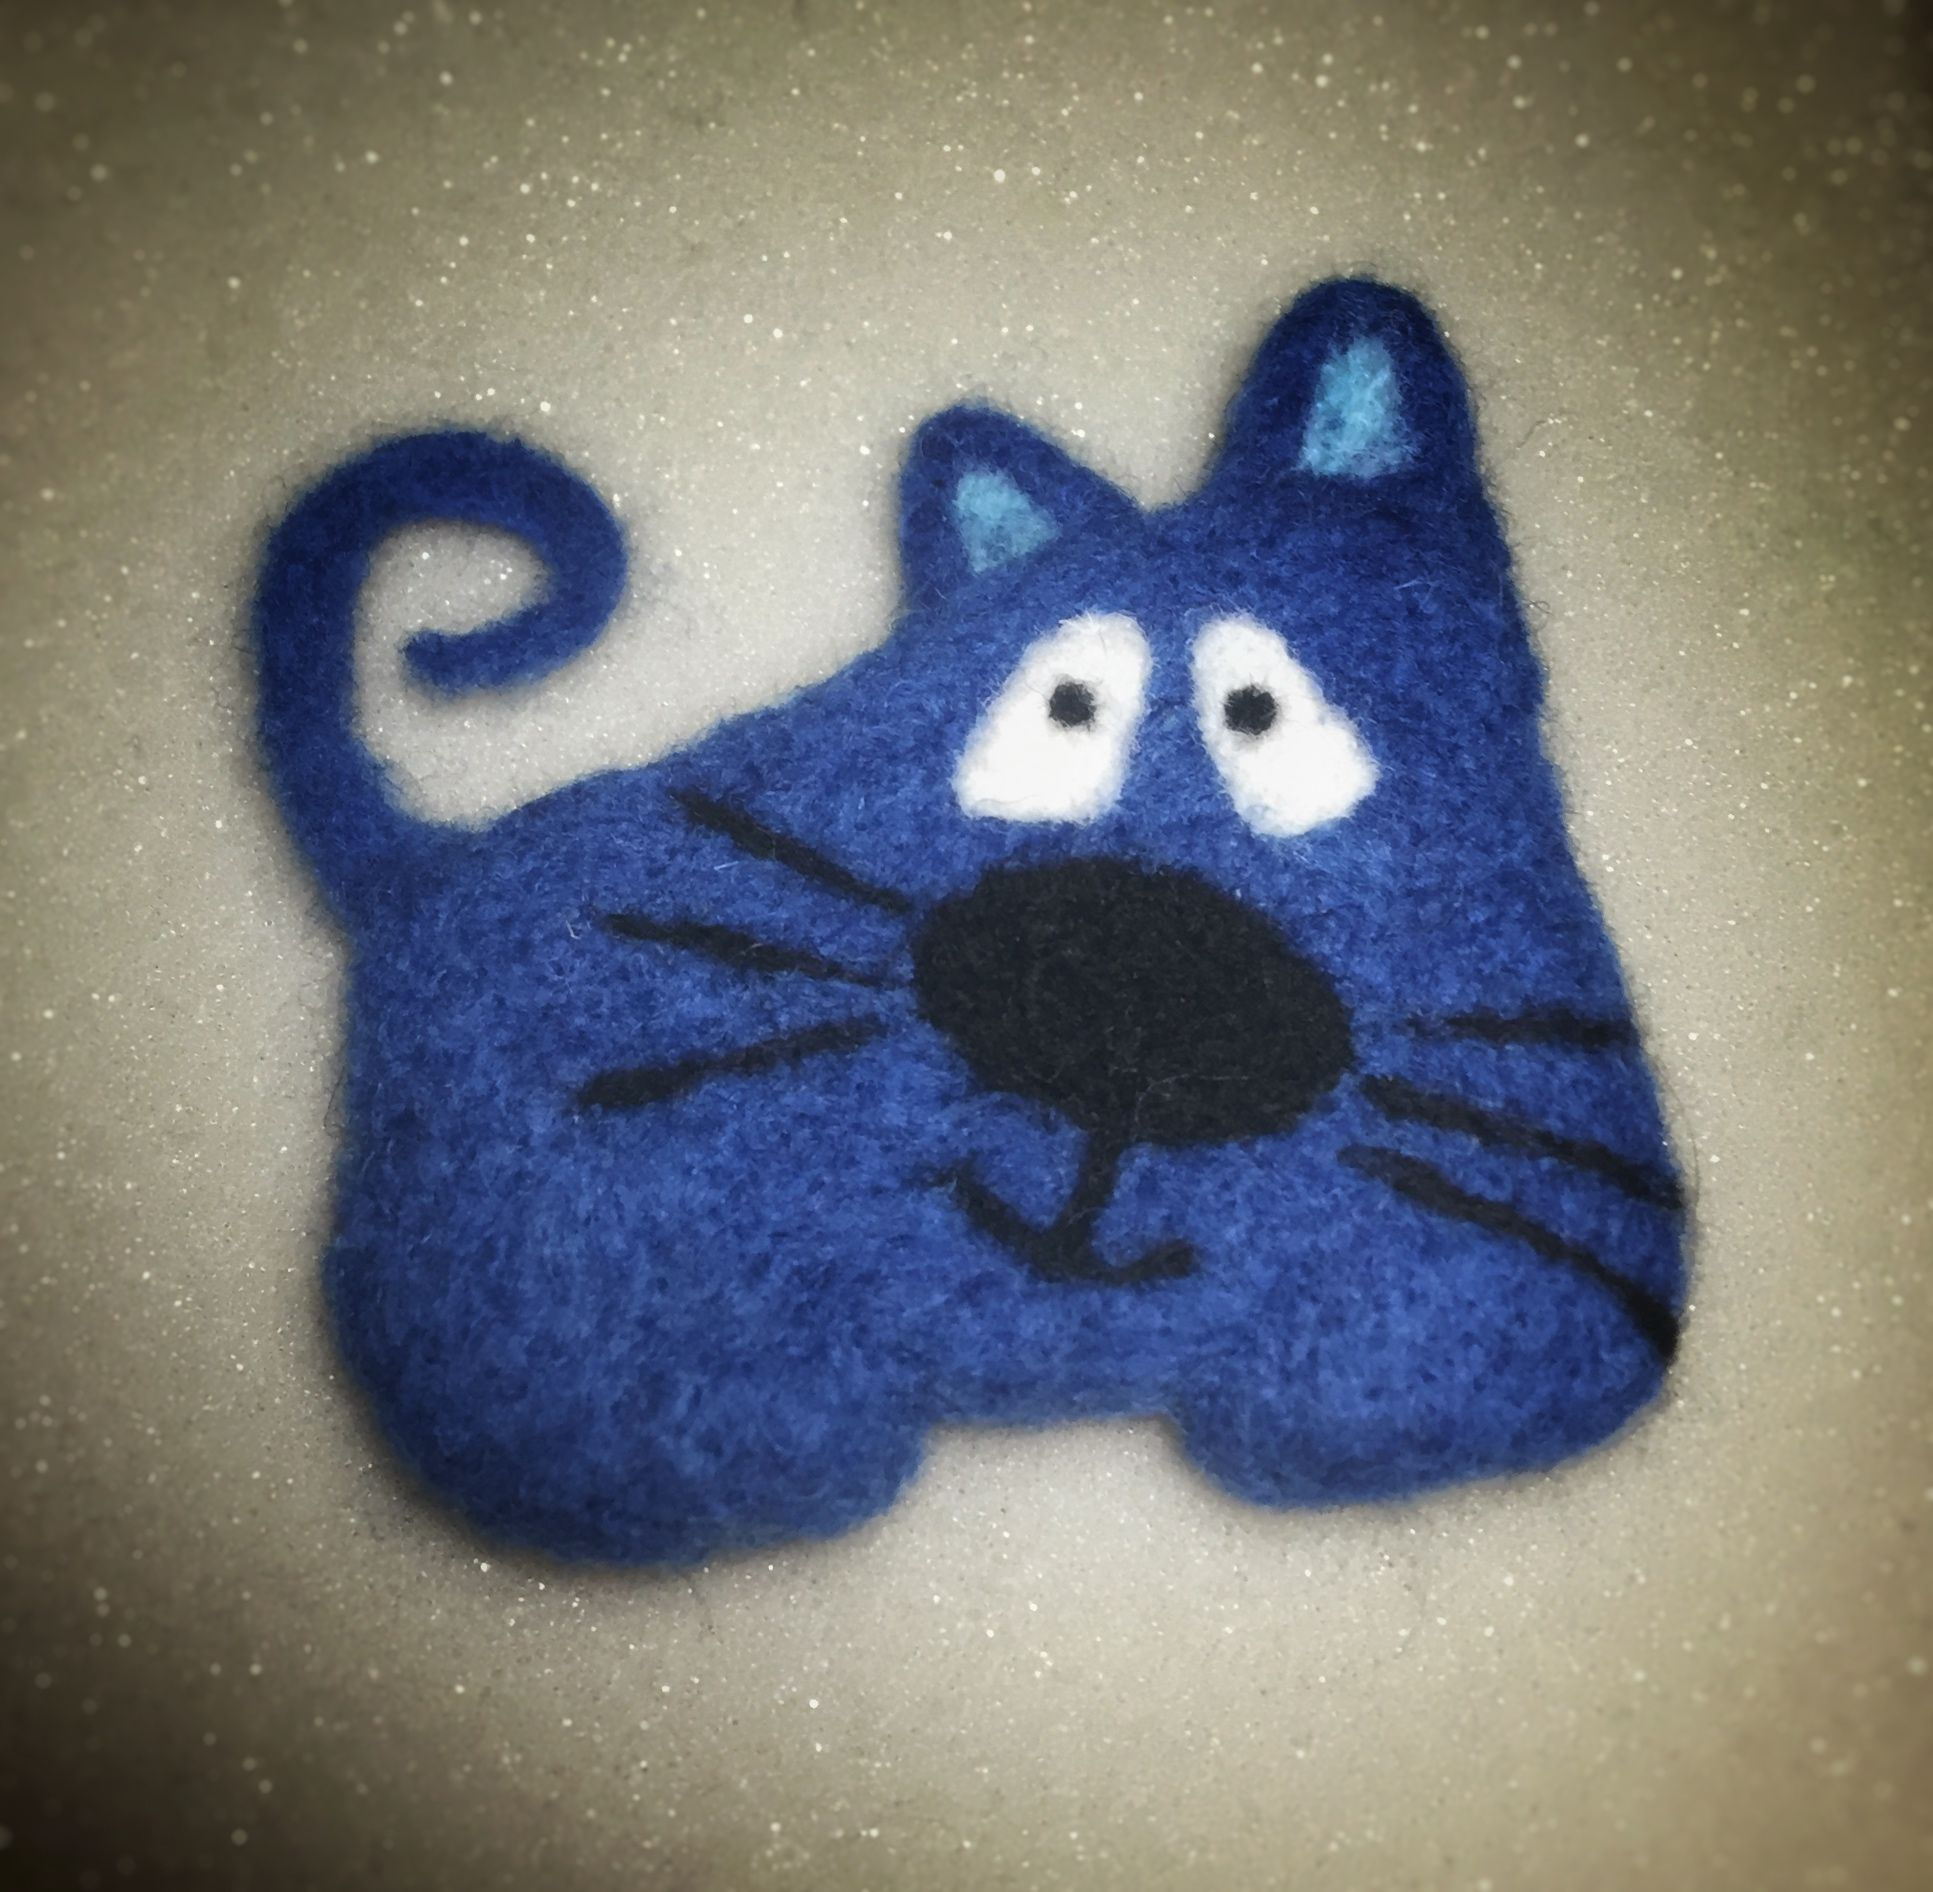 Needle felt - cute cat brooch